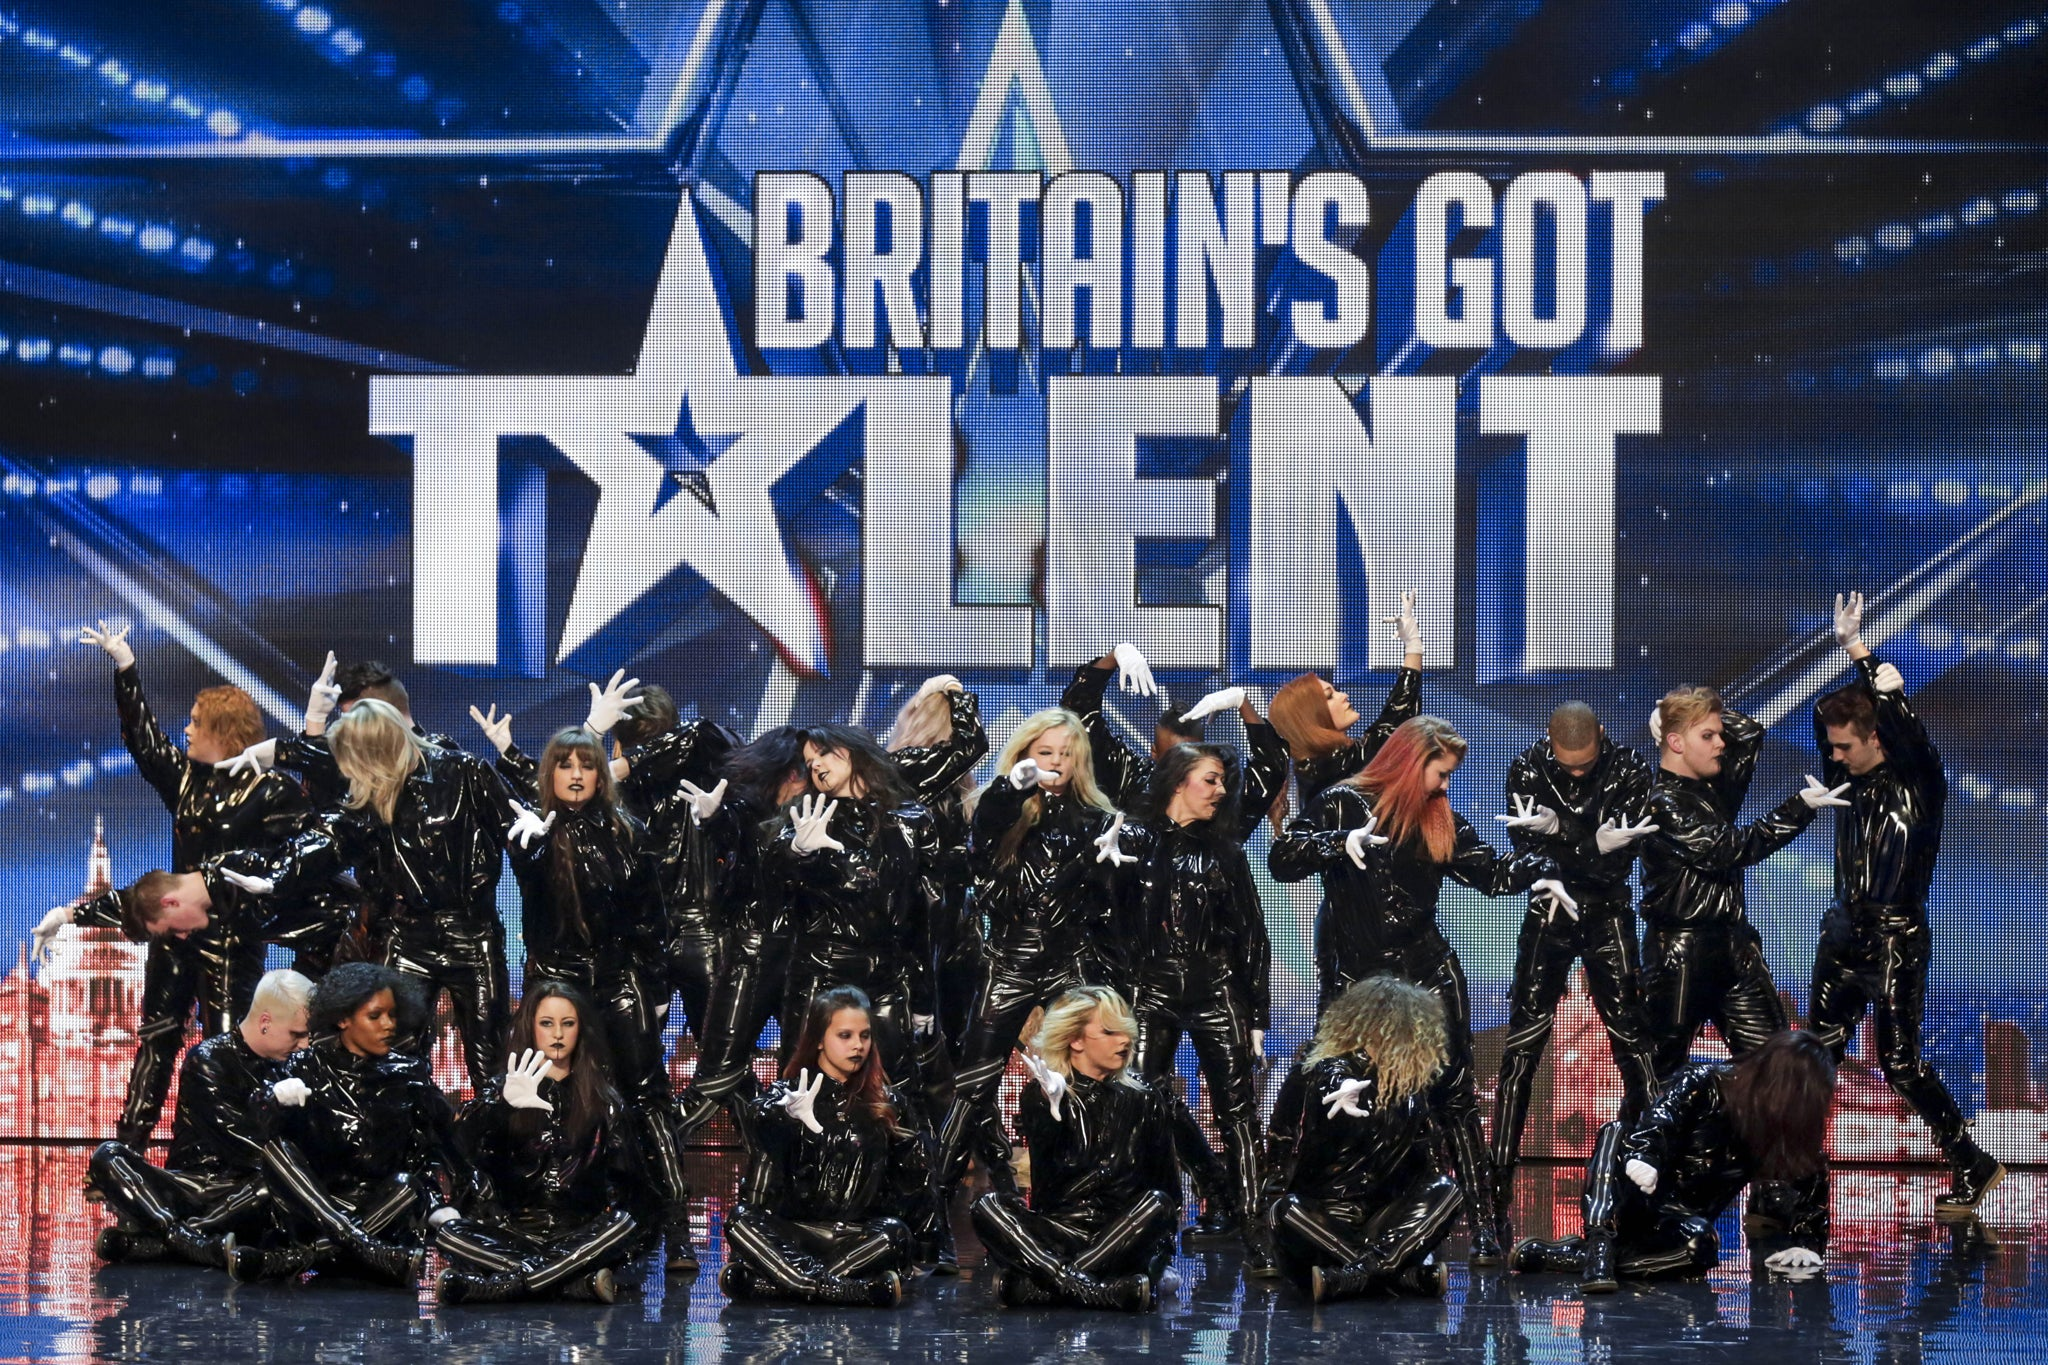 Britain S Got Talent 2014 James Smith And The Addict Initiative Through To Final The Independent The Independent